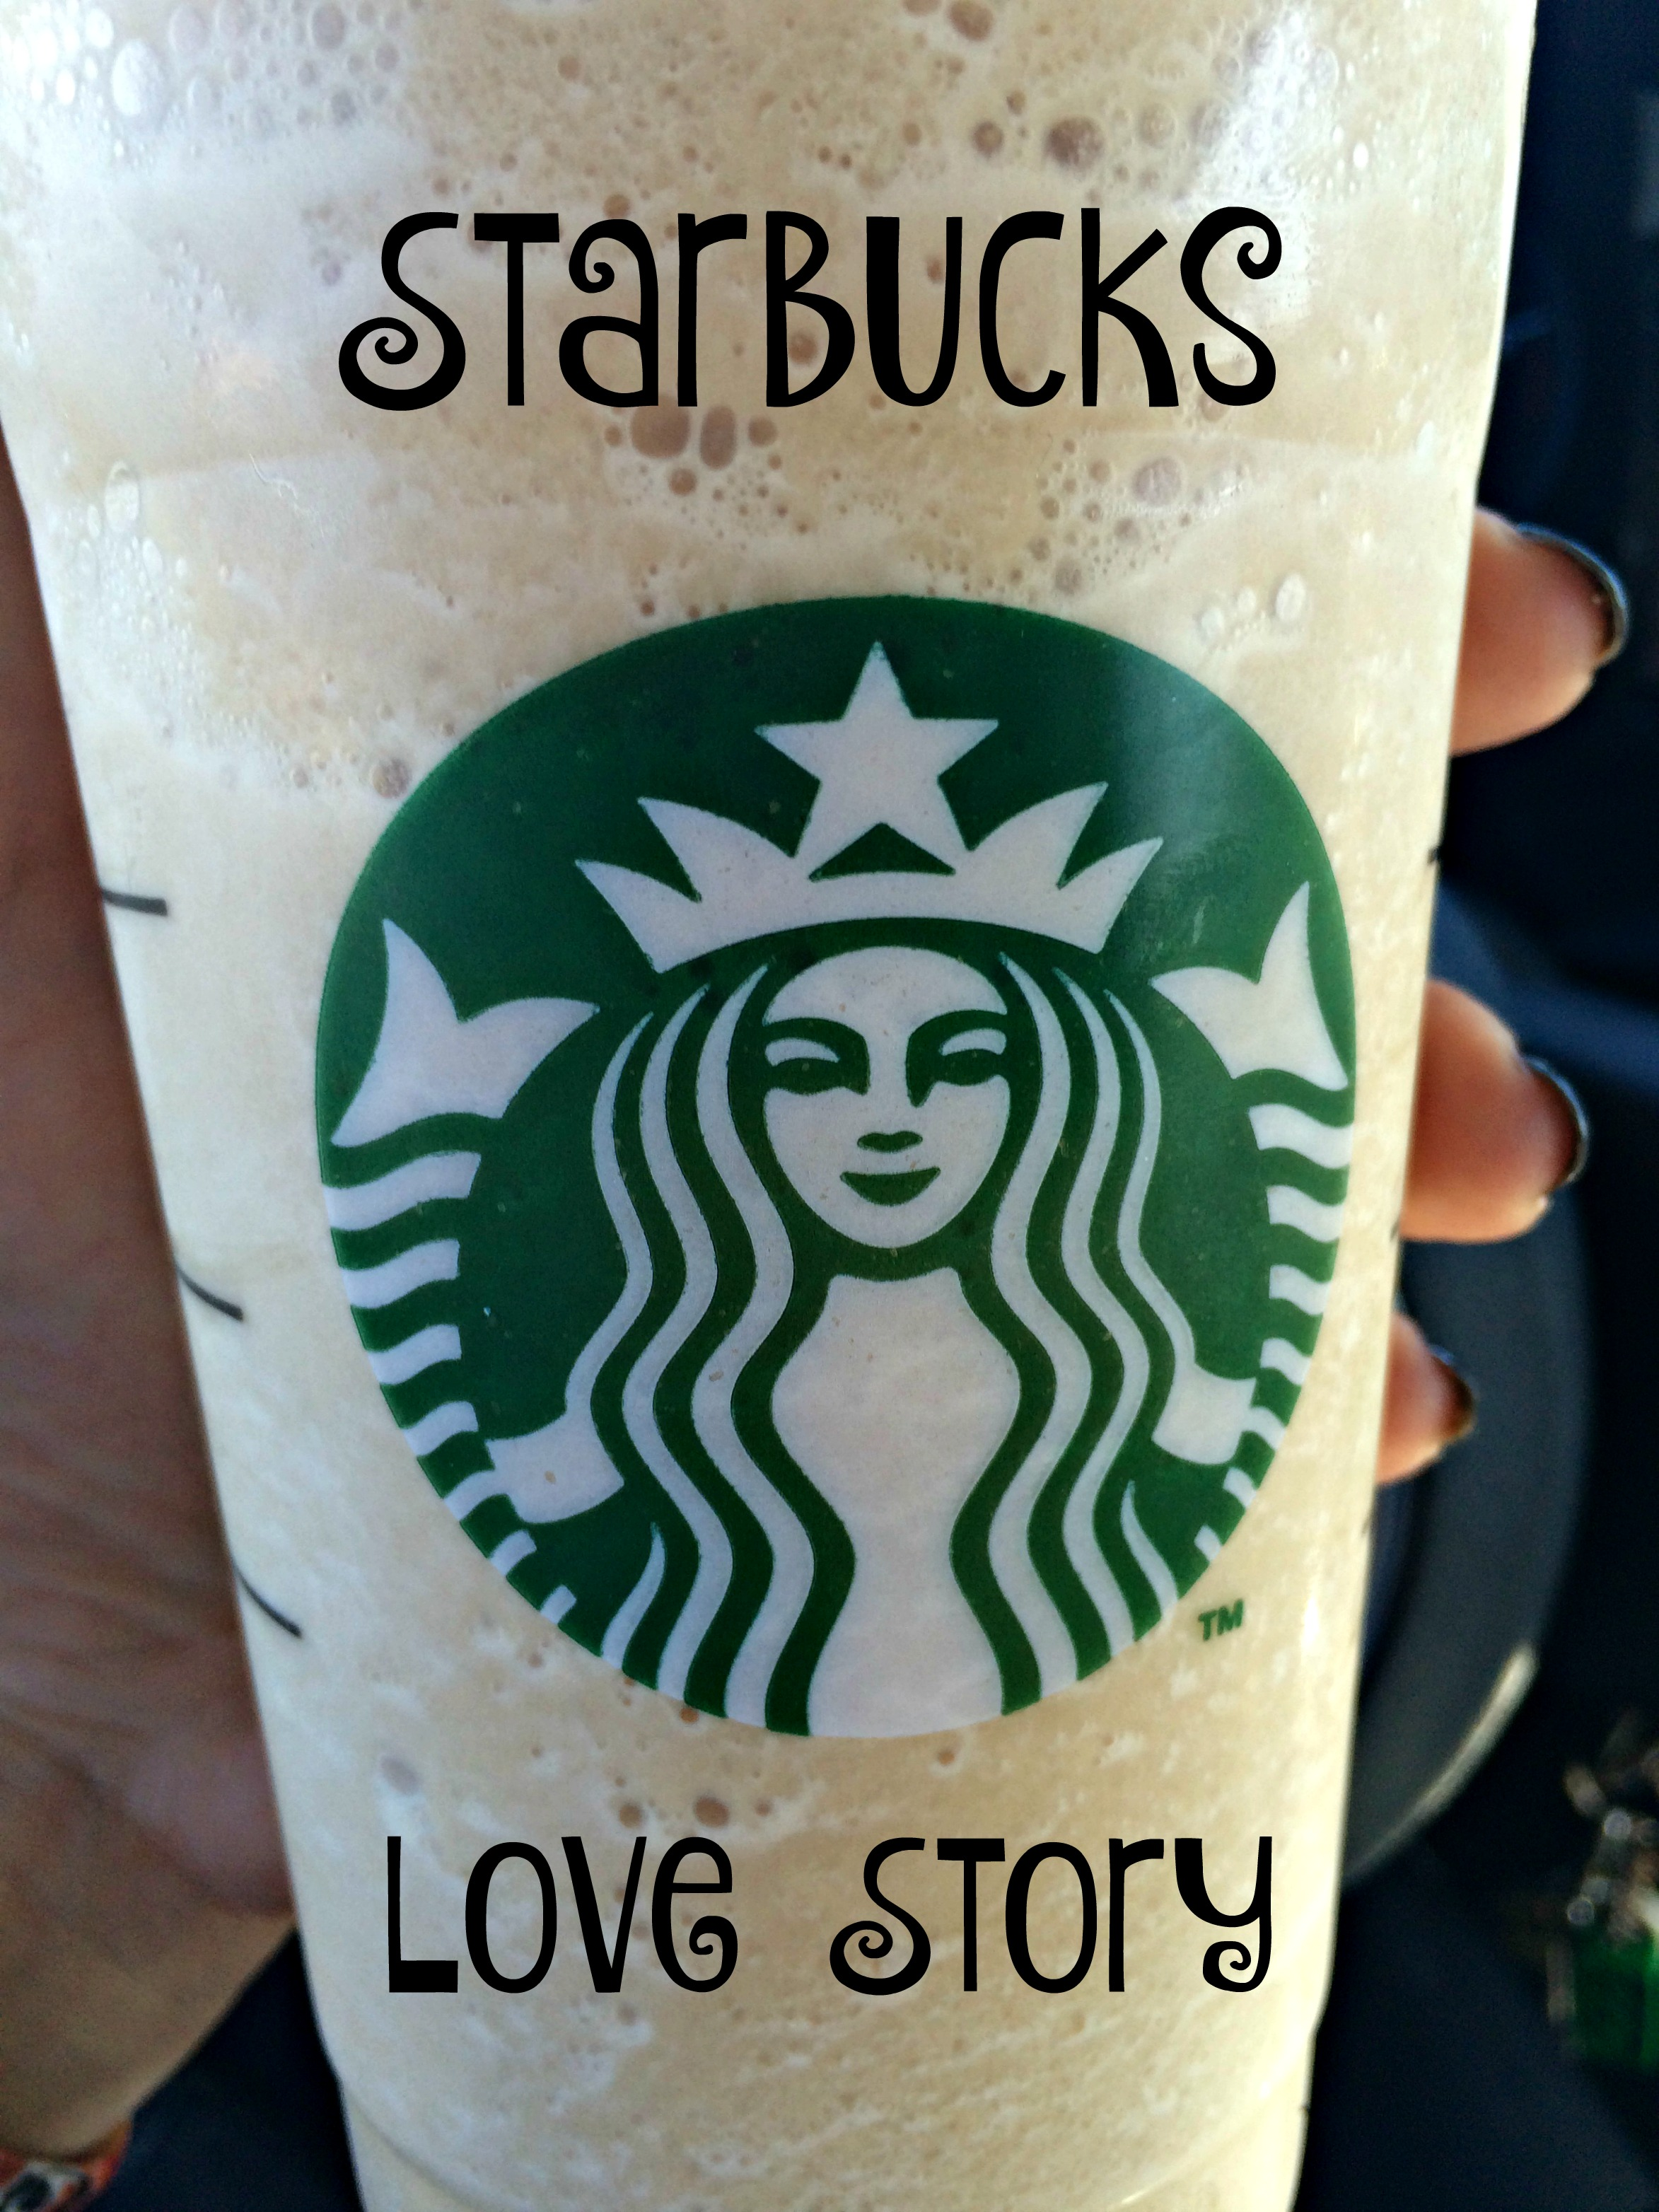 story of starbucks The starbucks story has 75 ratings and 10 reviews coffee is a commodity you can get a cup at any caf, sandwich bar or restaurant anywhere so how did s.